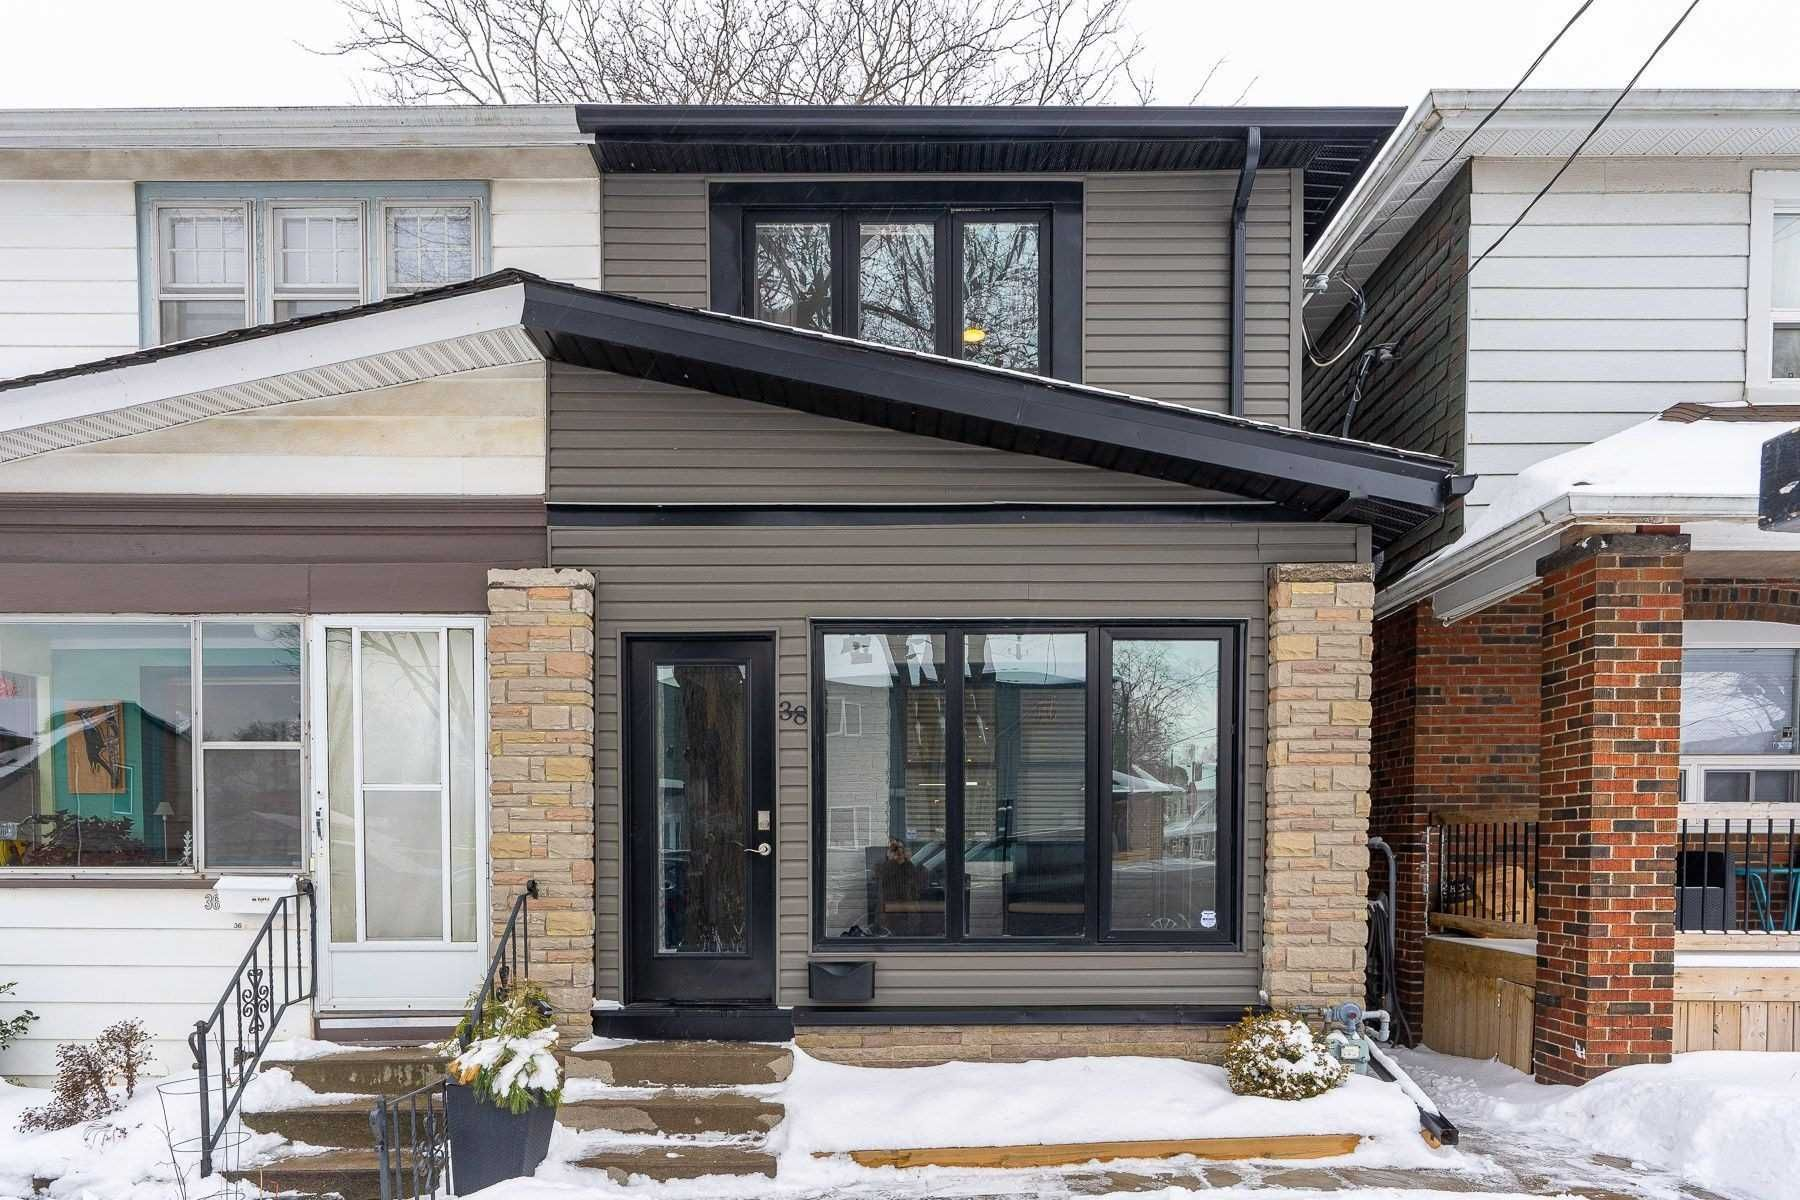 Main Photo: 38 Billings Avenue in Toronto: Greenwood-Coxwell House (2-Storey) for sale (Toronto E01)  : MLS®# E5124681